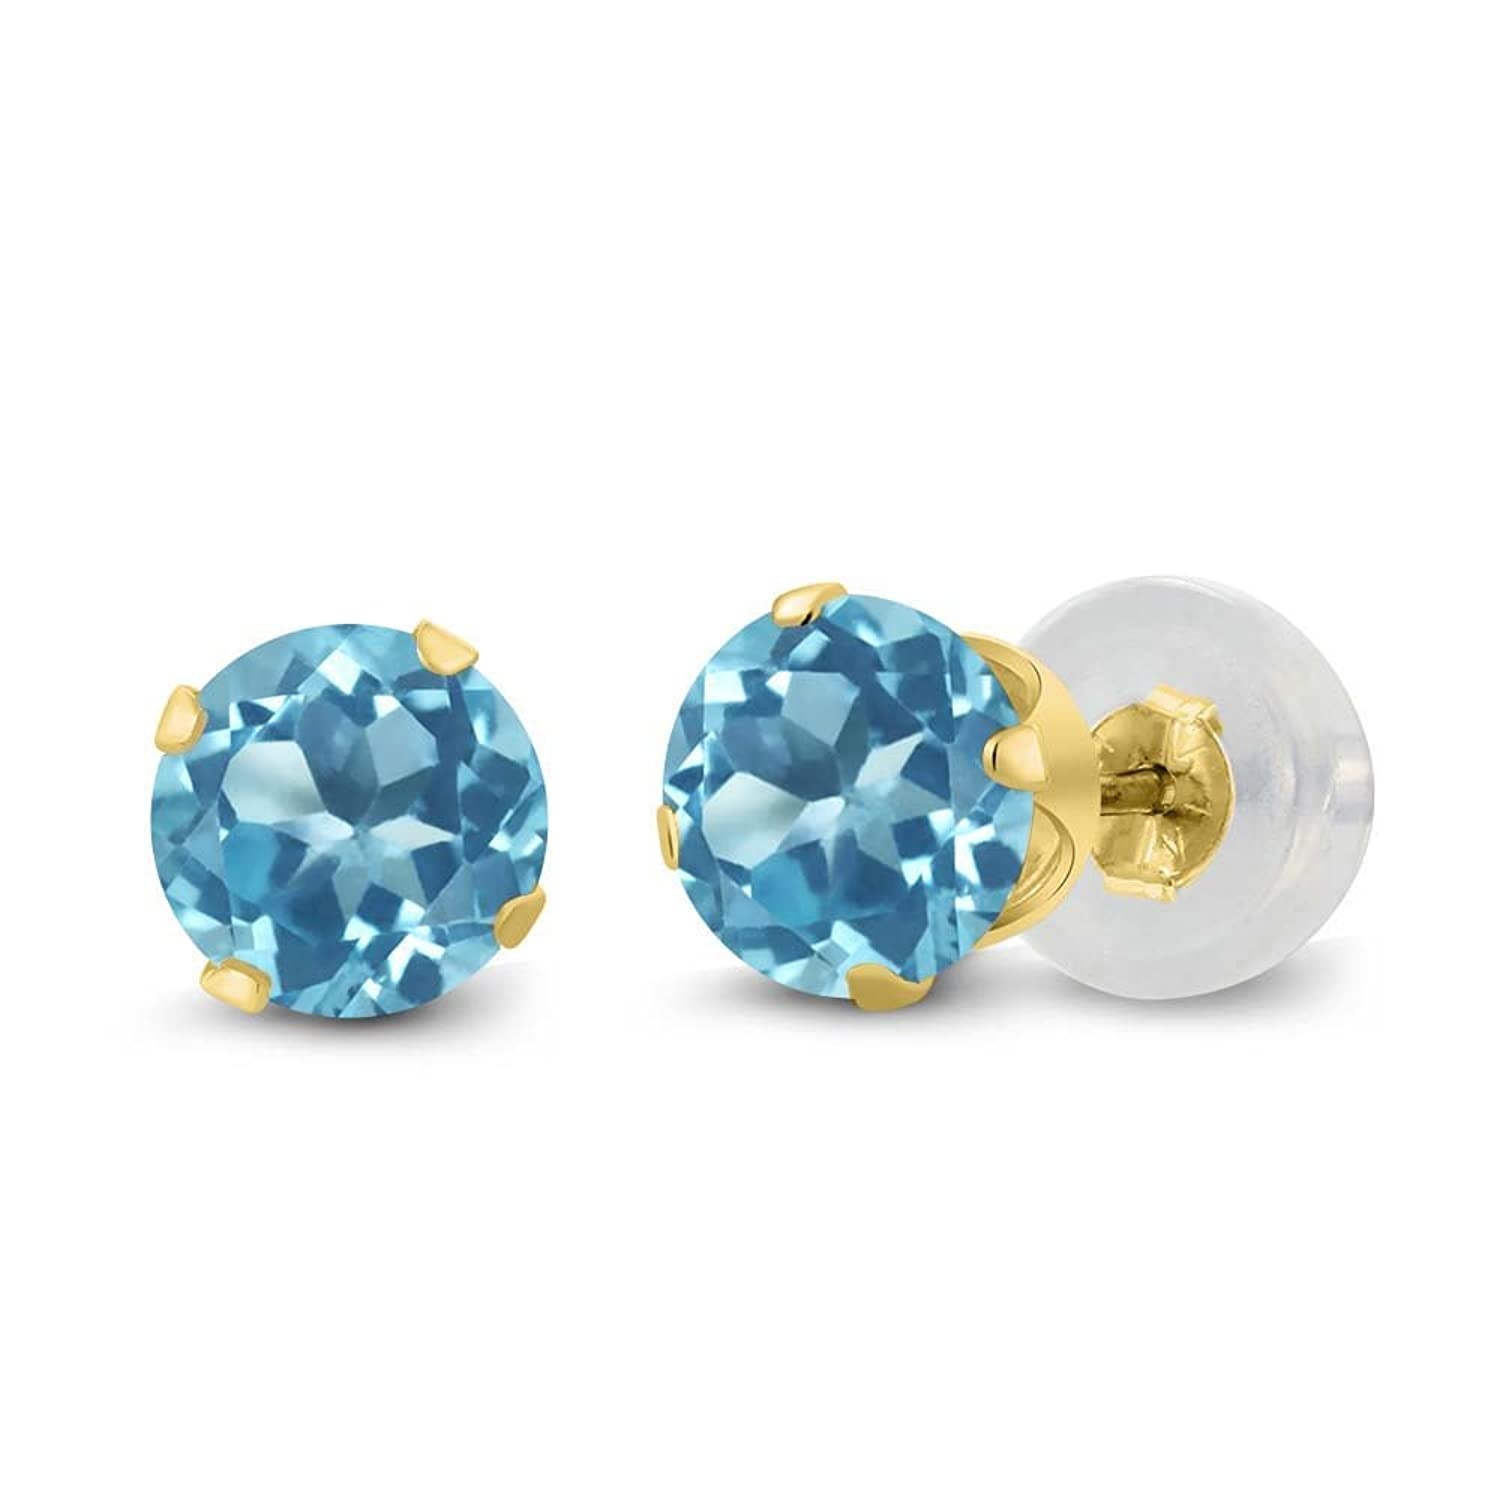 birthstones sterling deyong silver london image stud earrings swiss david blue topaz by